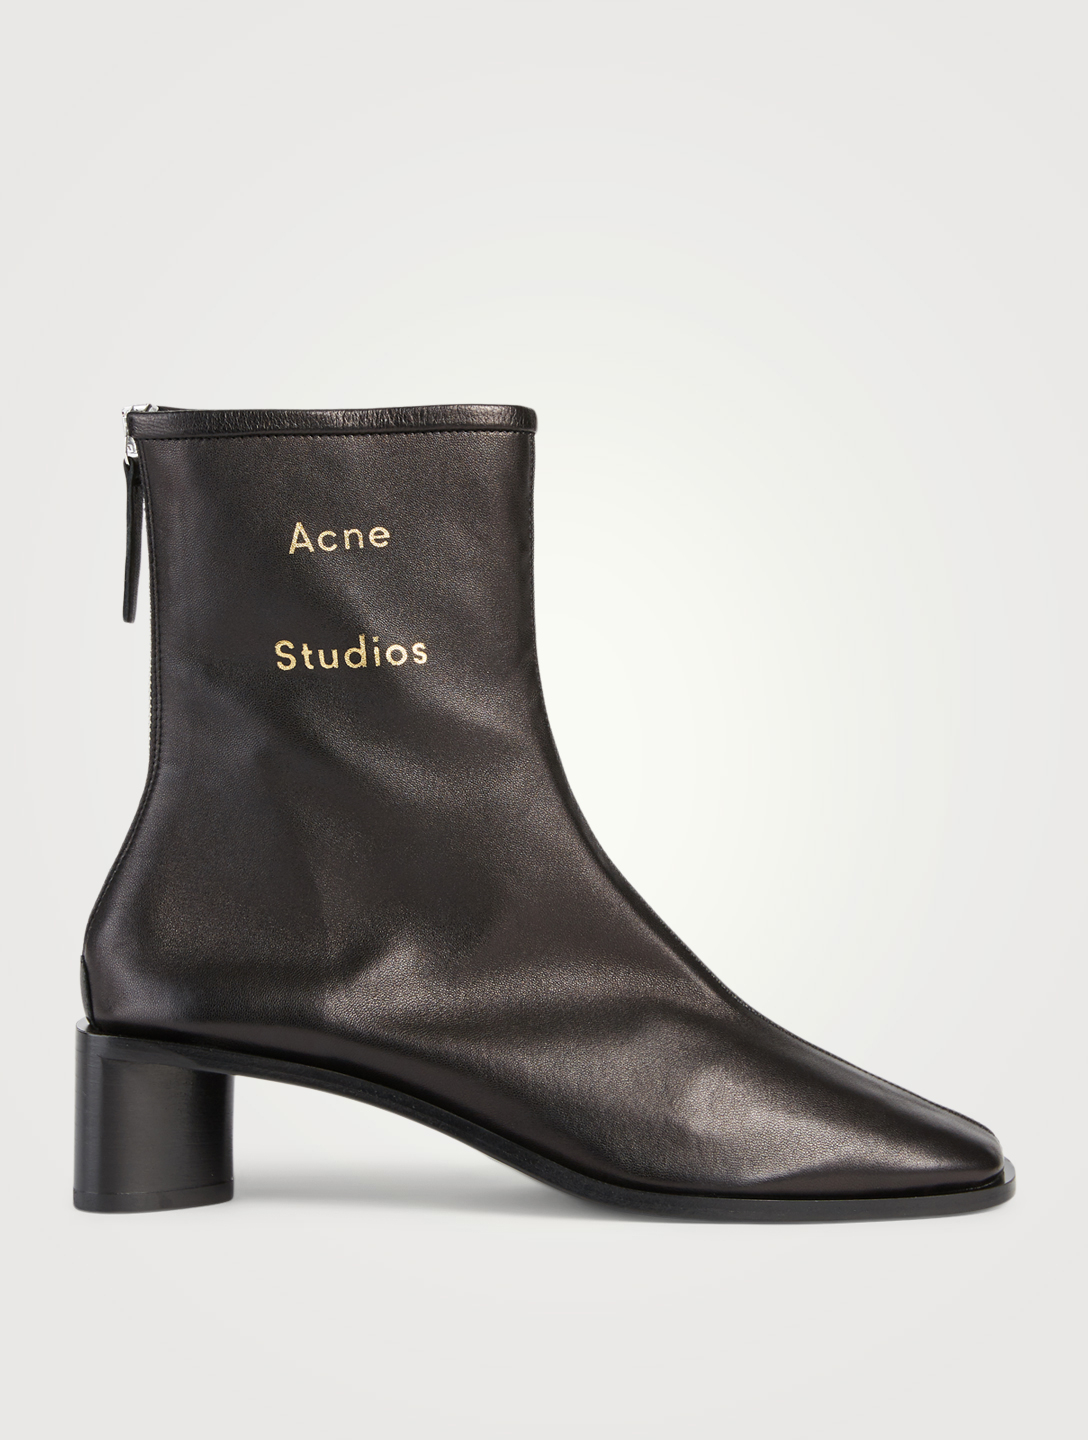 ACNE STUDIOS Leather Logo Heeled Ankle Boots Women's Black